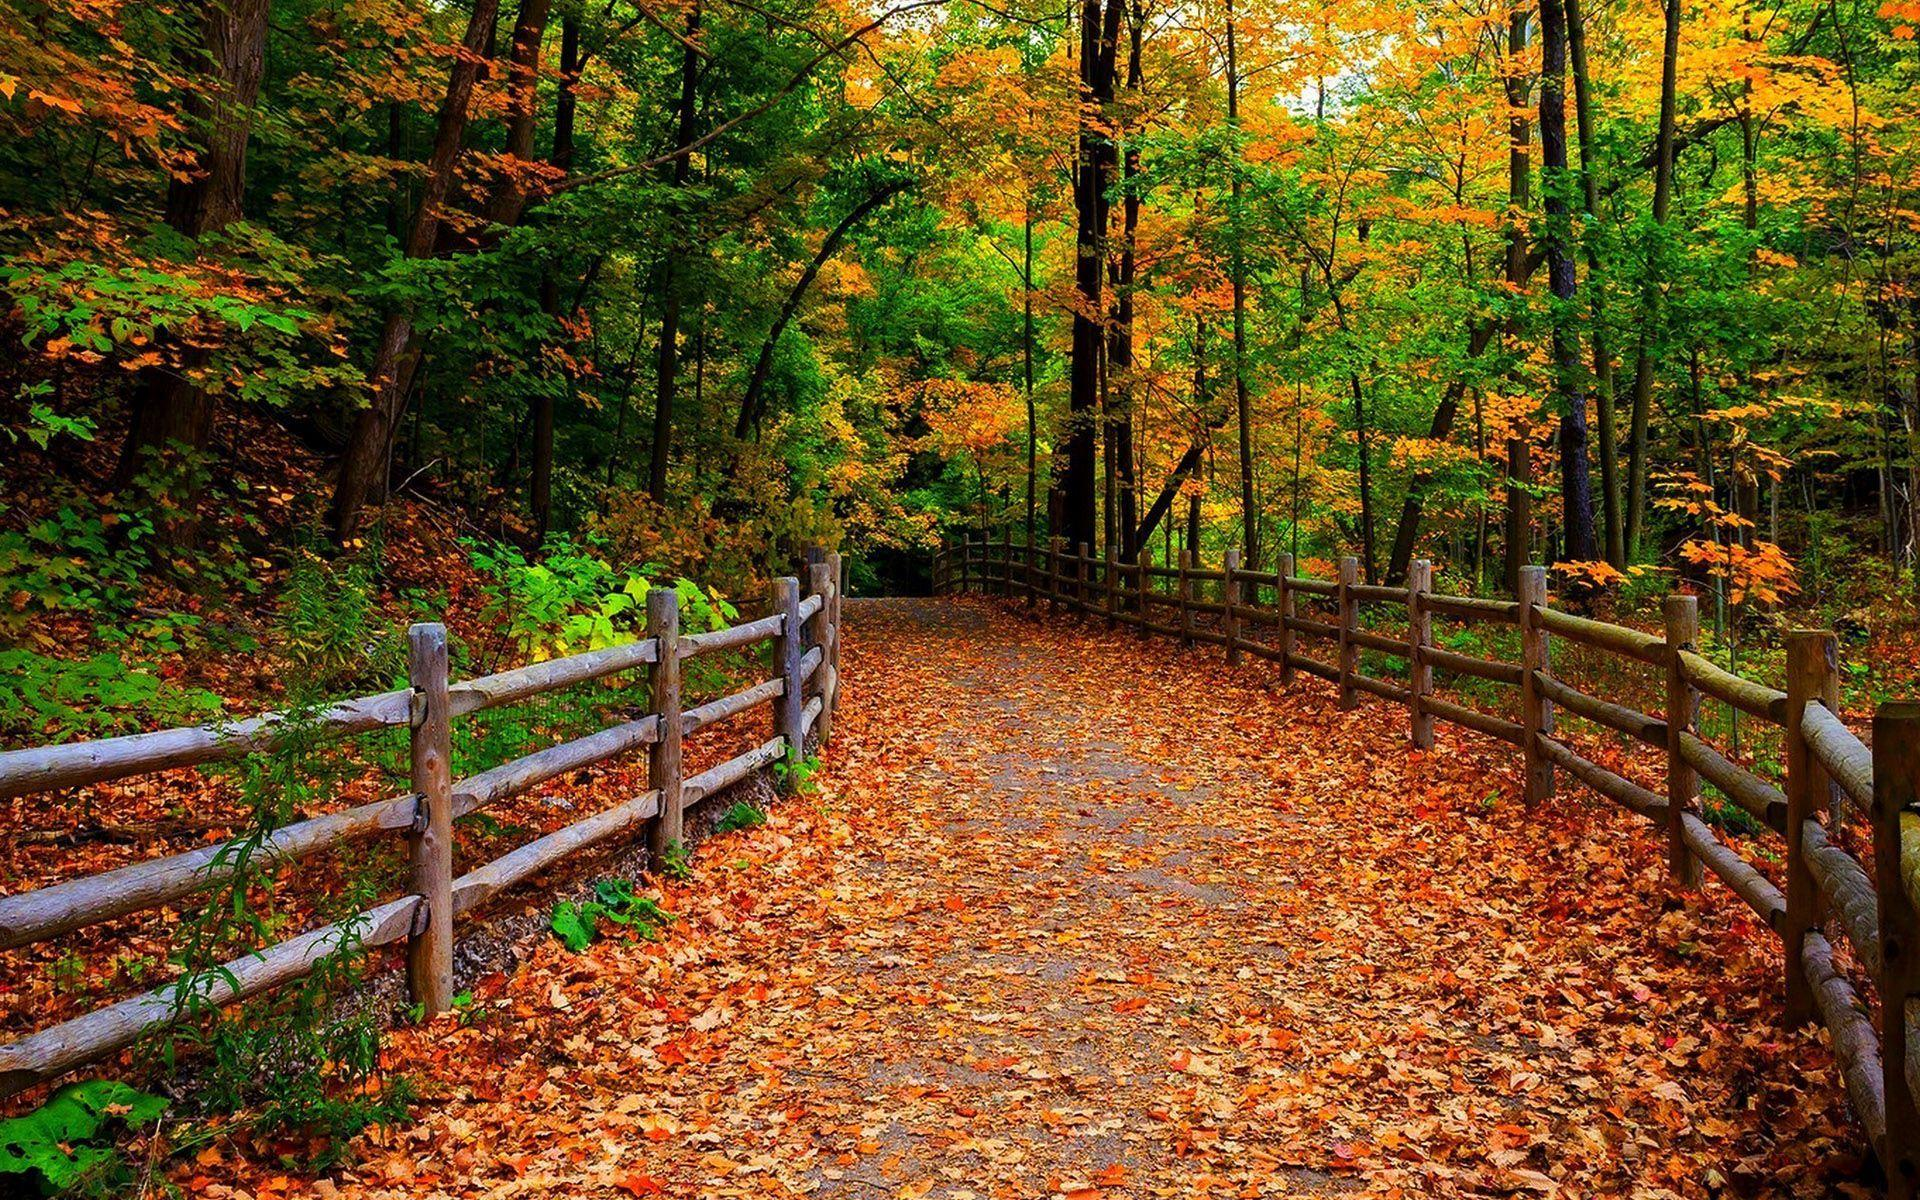 Fall Tree And Black Fence Wallpaper Hd Fence Along The Path To The Forest Wallpaper Download